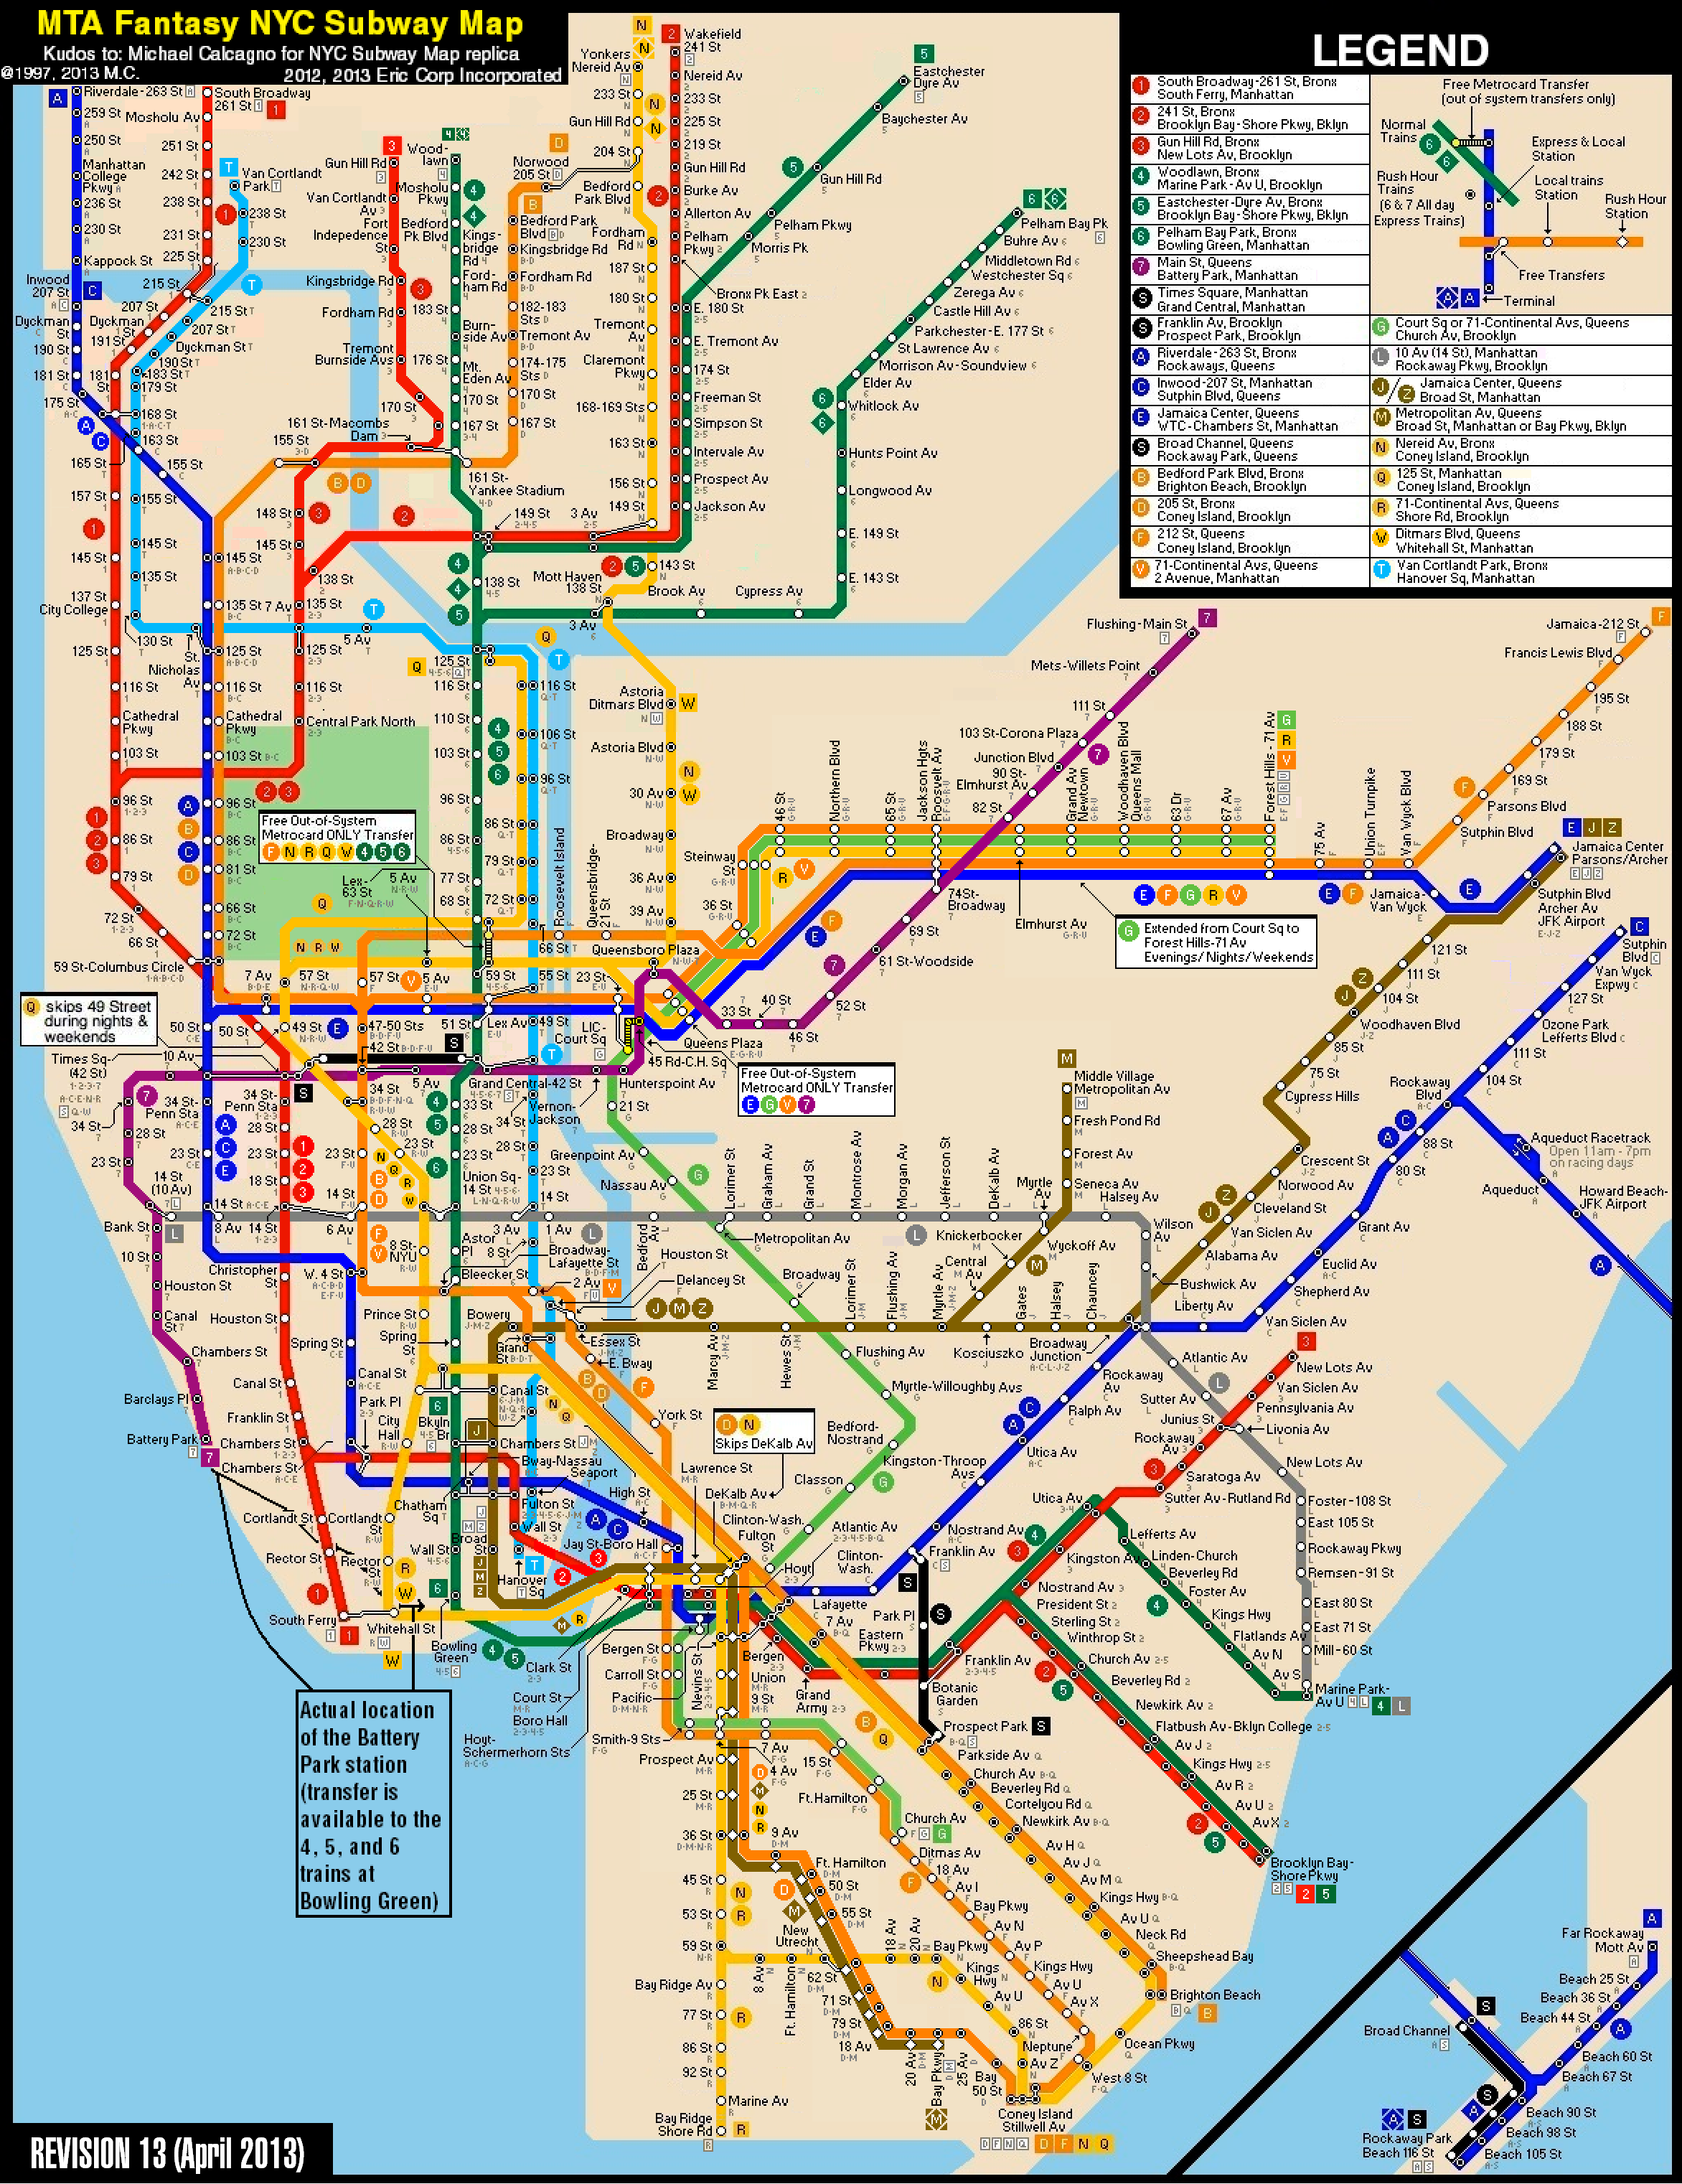 New York City Subway Fantasy Map (Revision 13) by ECInc2XXX on